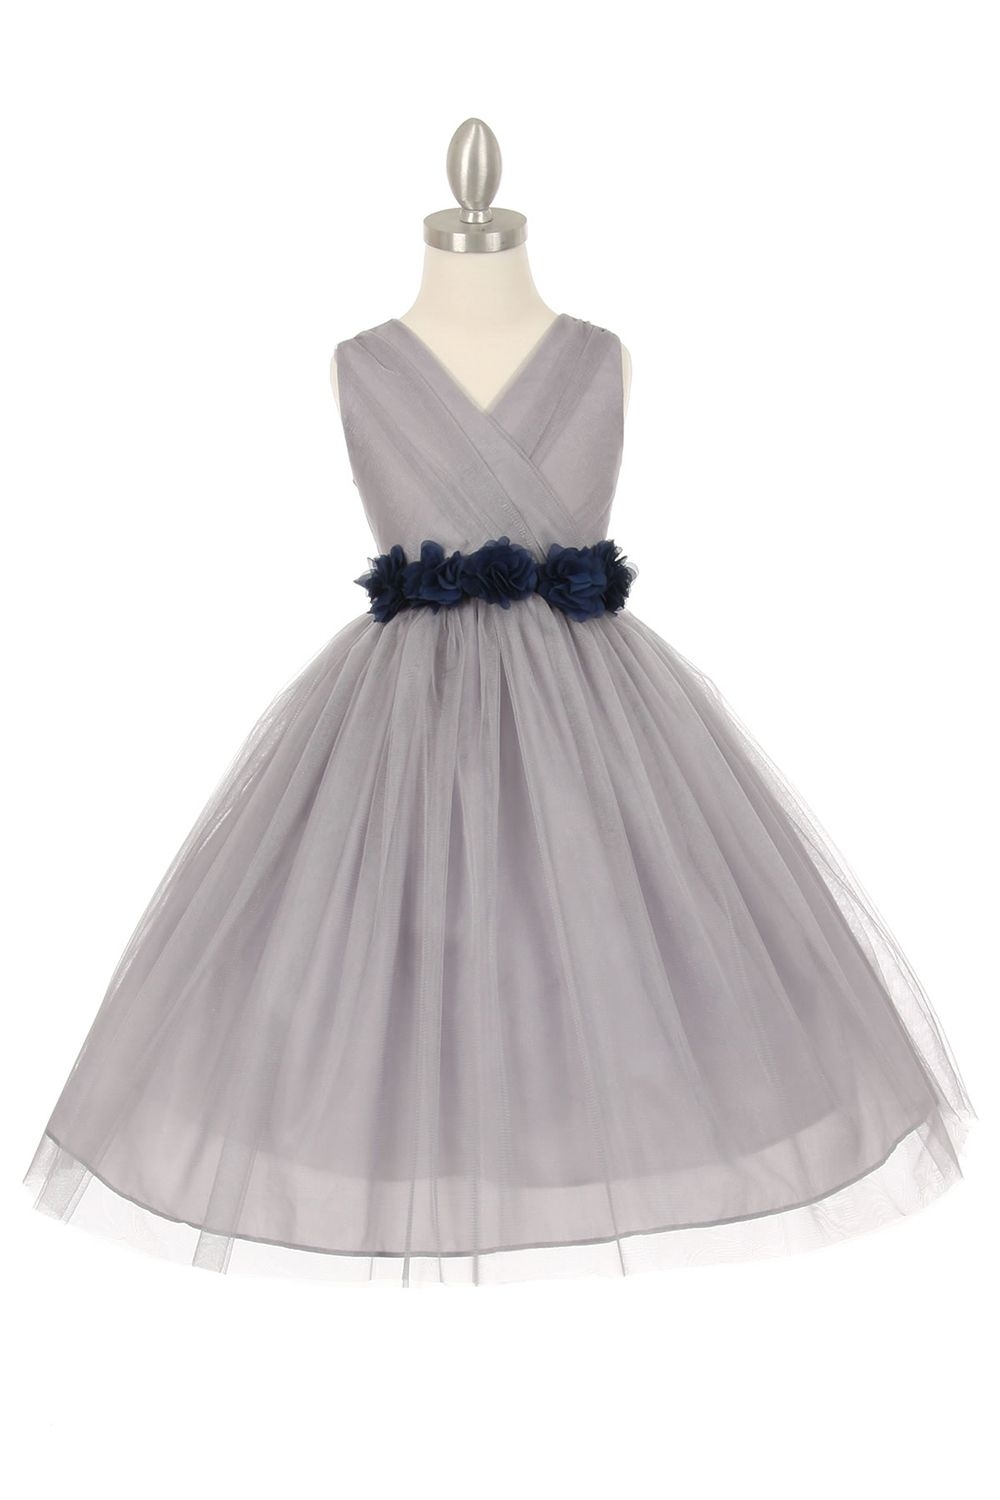 Silvernavy blue tulle v neck with removable floral sash flower girl silvernavy blue tulle v neck with removable floral sash flower girl dress izmirmasajfo